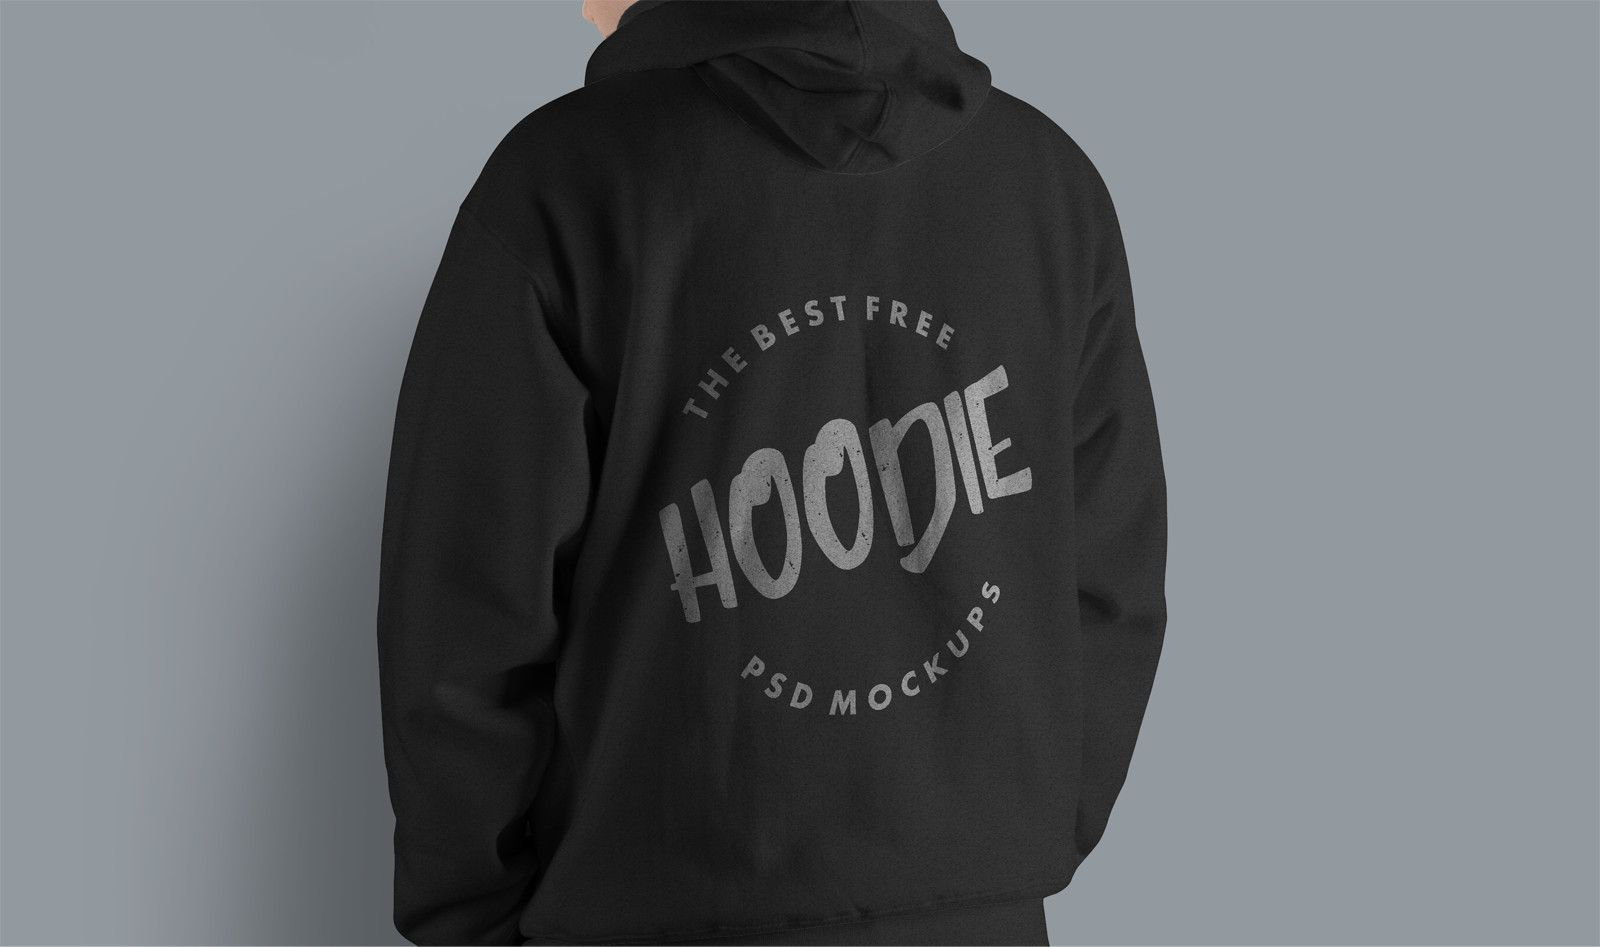 Download The Best Free Psd Hoodie Mockups Hipsthetic In 2021 Hoodie Mockup Hoodie Mockup Free Mockup Psd